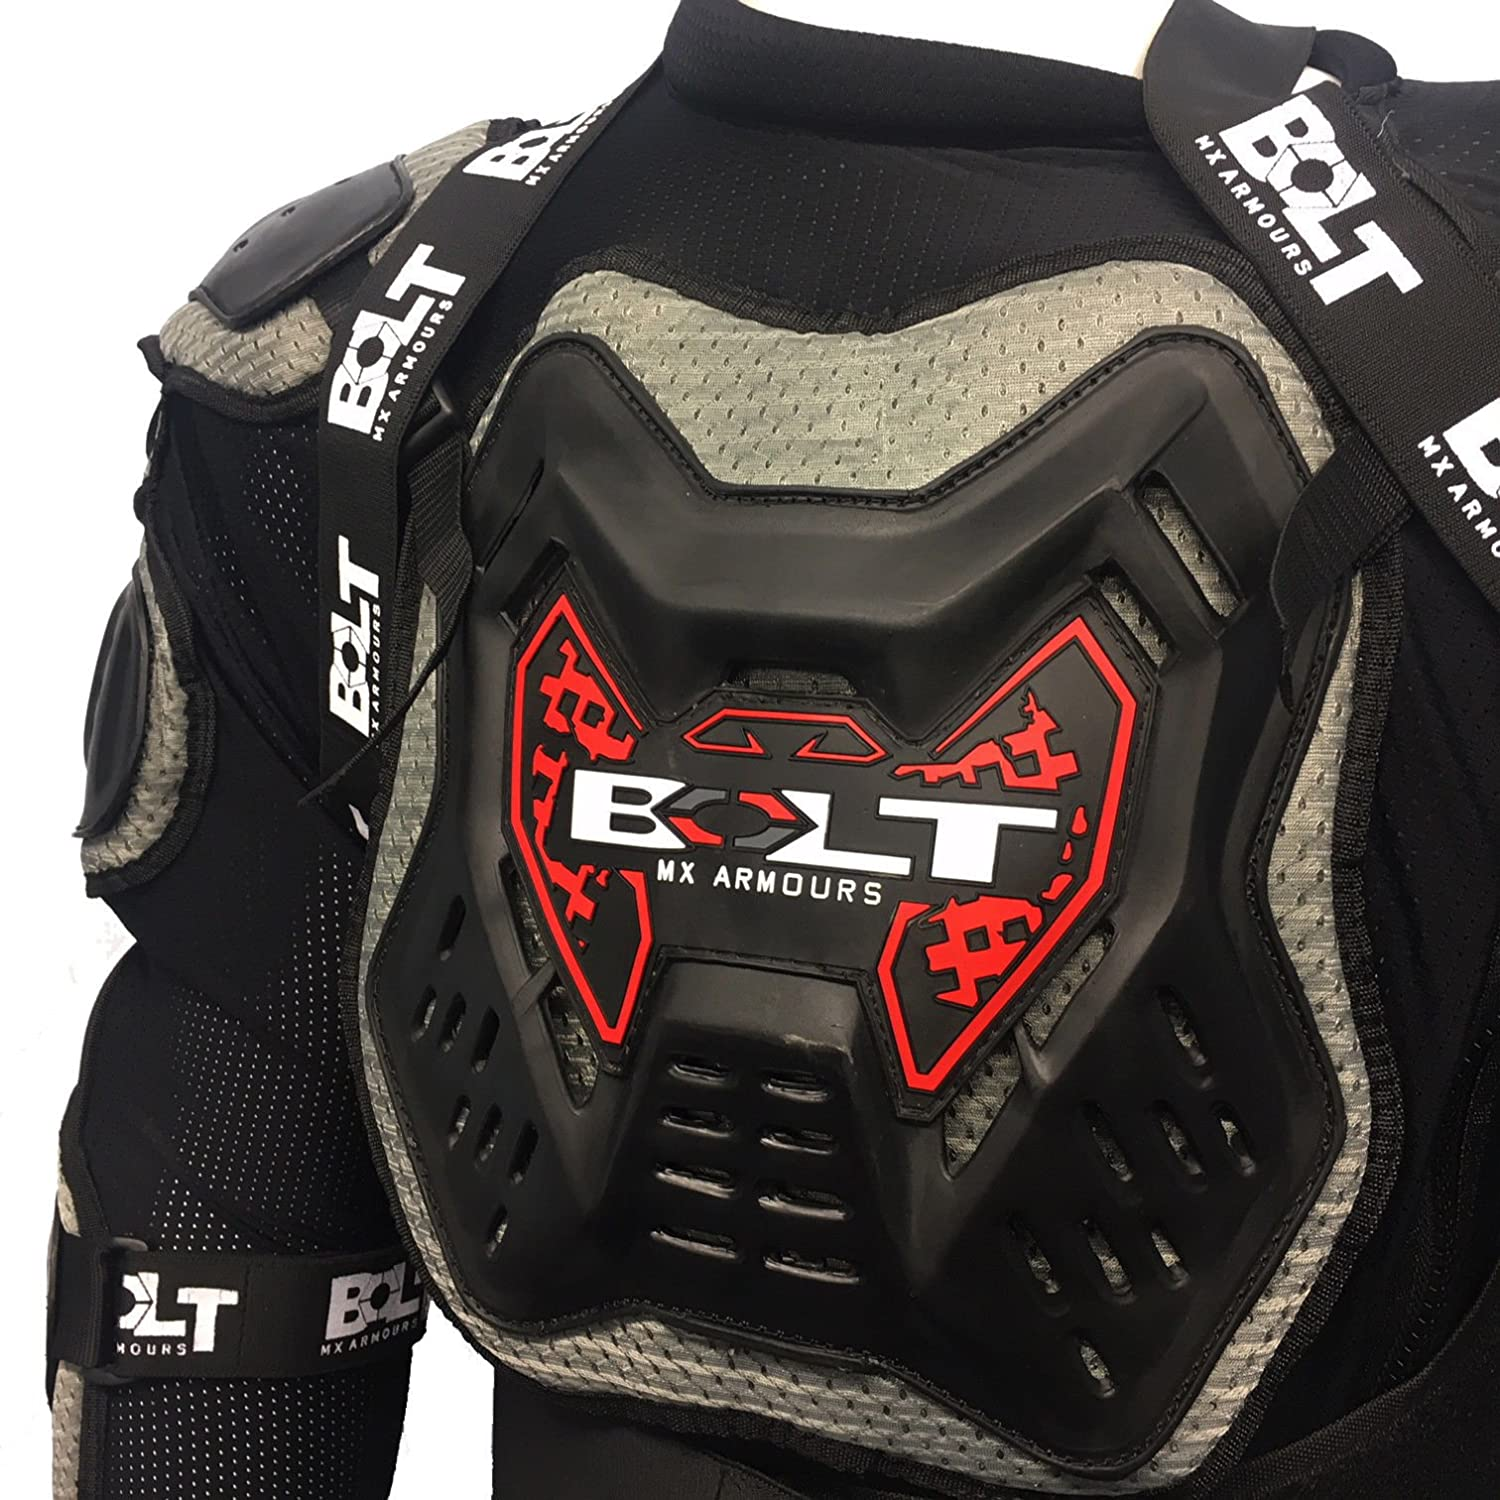 53-56 Inch 6XL /– BOLT CORE-2 ADULT MOTORBIKE MOTOCROSS BODY ARMOUR PROTECTION JACKET CE APPROVED GUARD